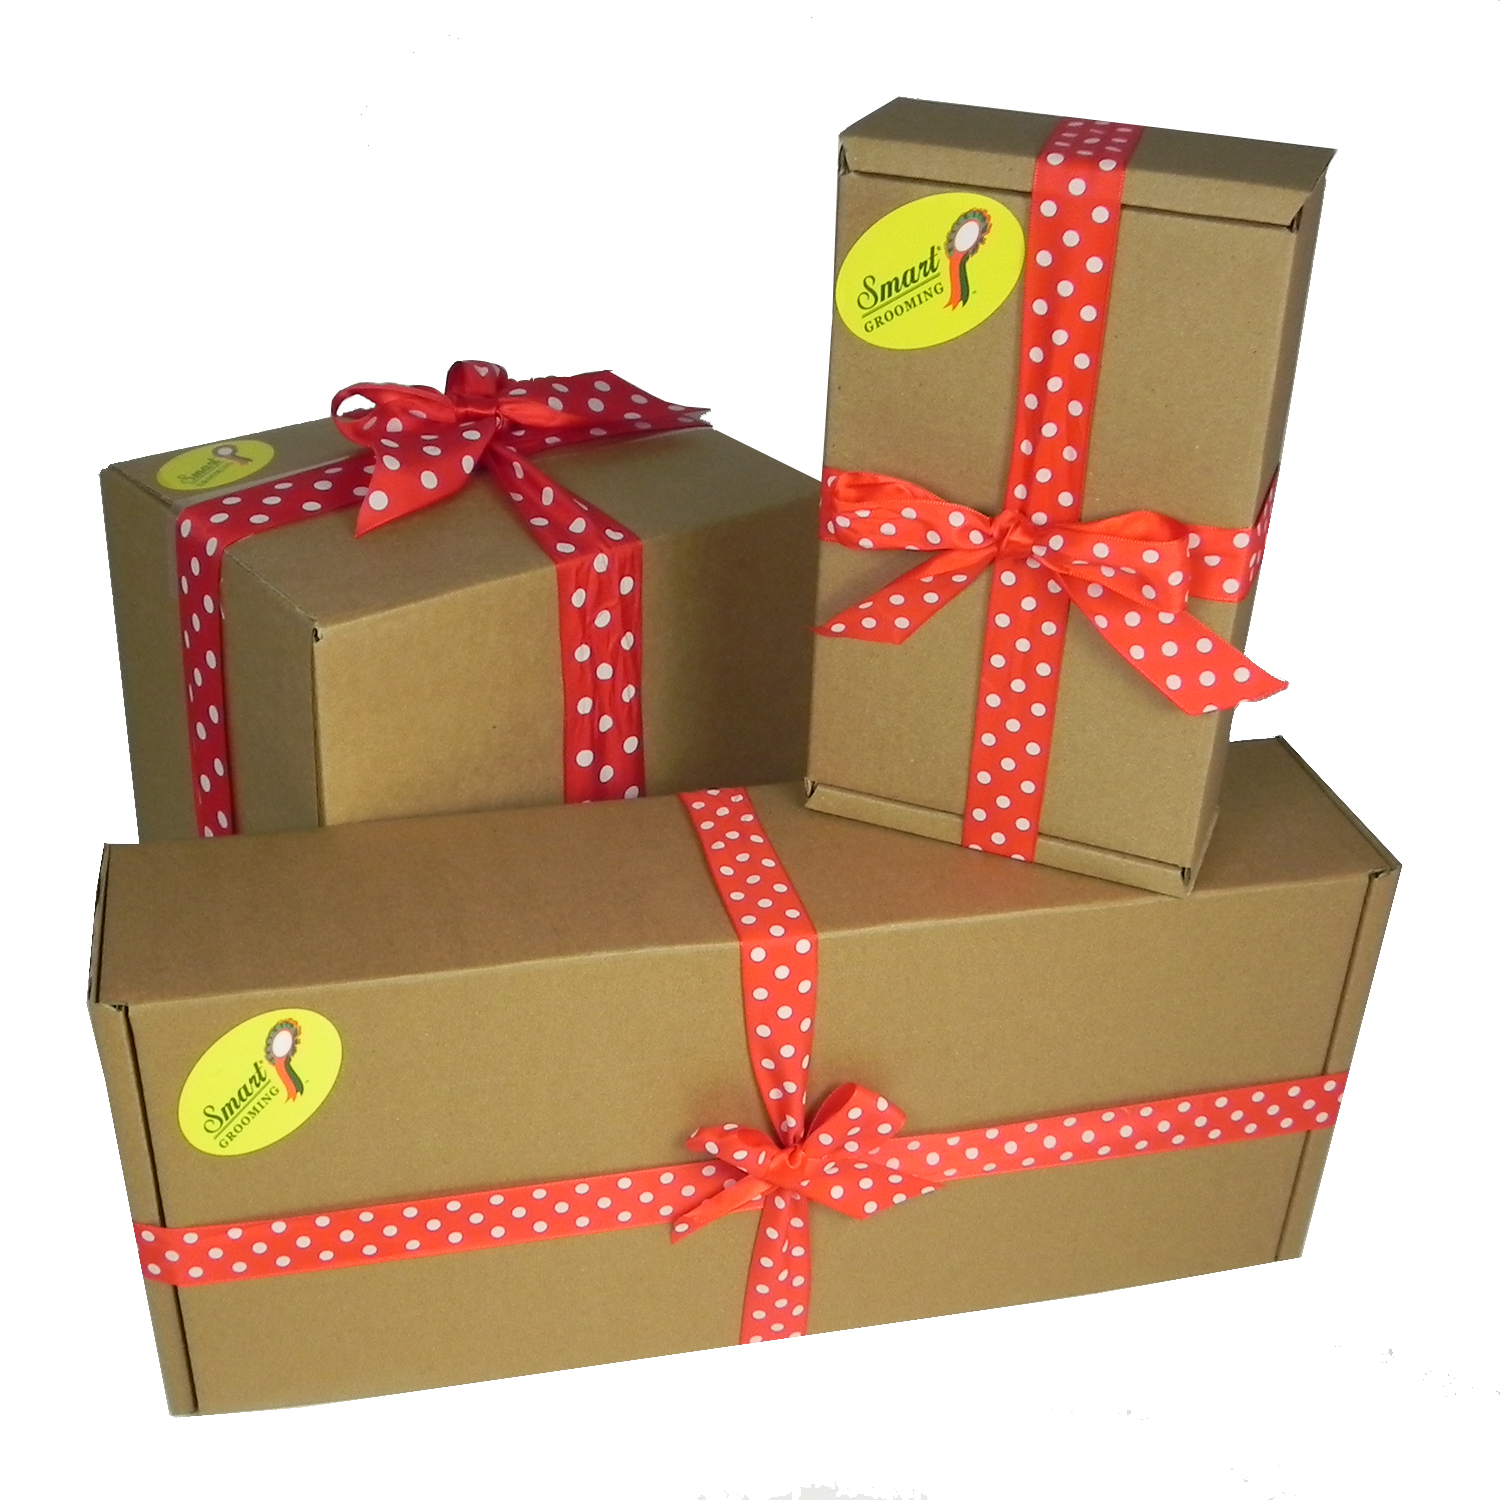 Send as a gift! - This set can be hand wrapped as a gift from Christmas, birthdays or just because! It will come ready made, all bottles will be sealed in plastic and comforted by wooden wool, tied up with a lovely ribbon, ready to give to the recipient!